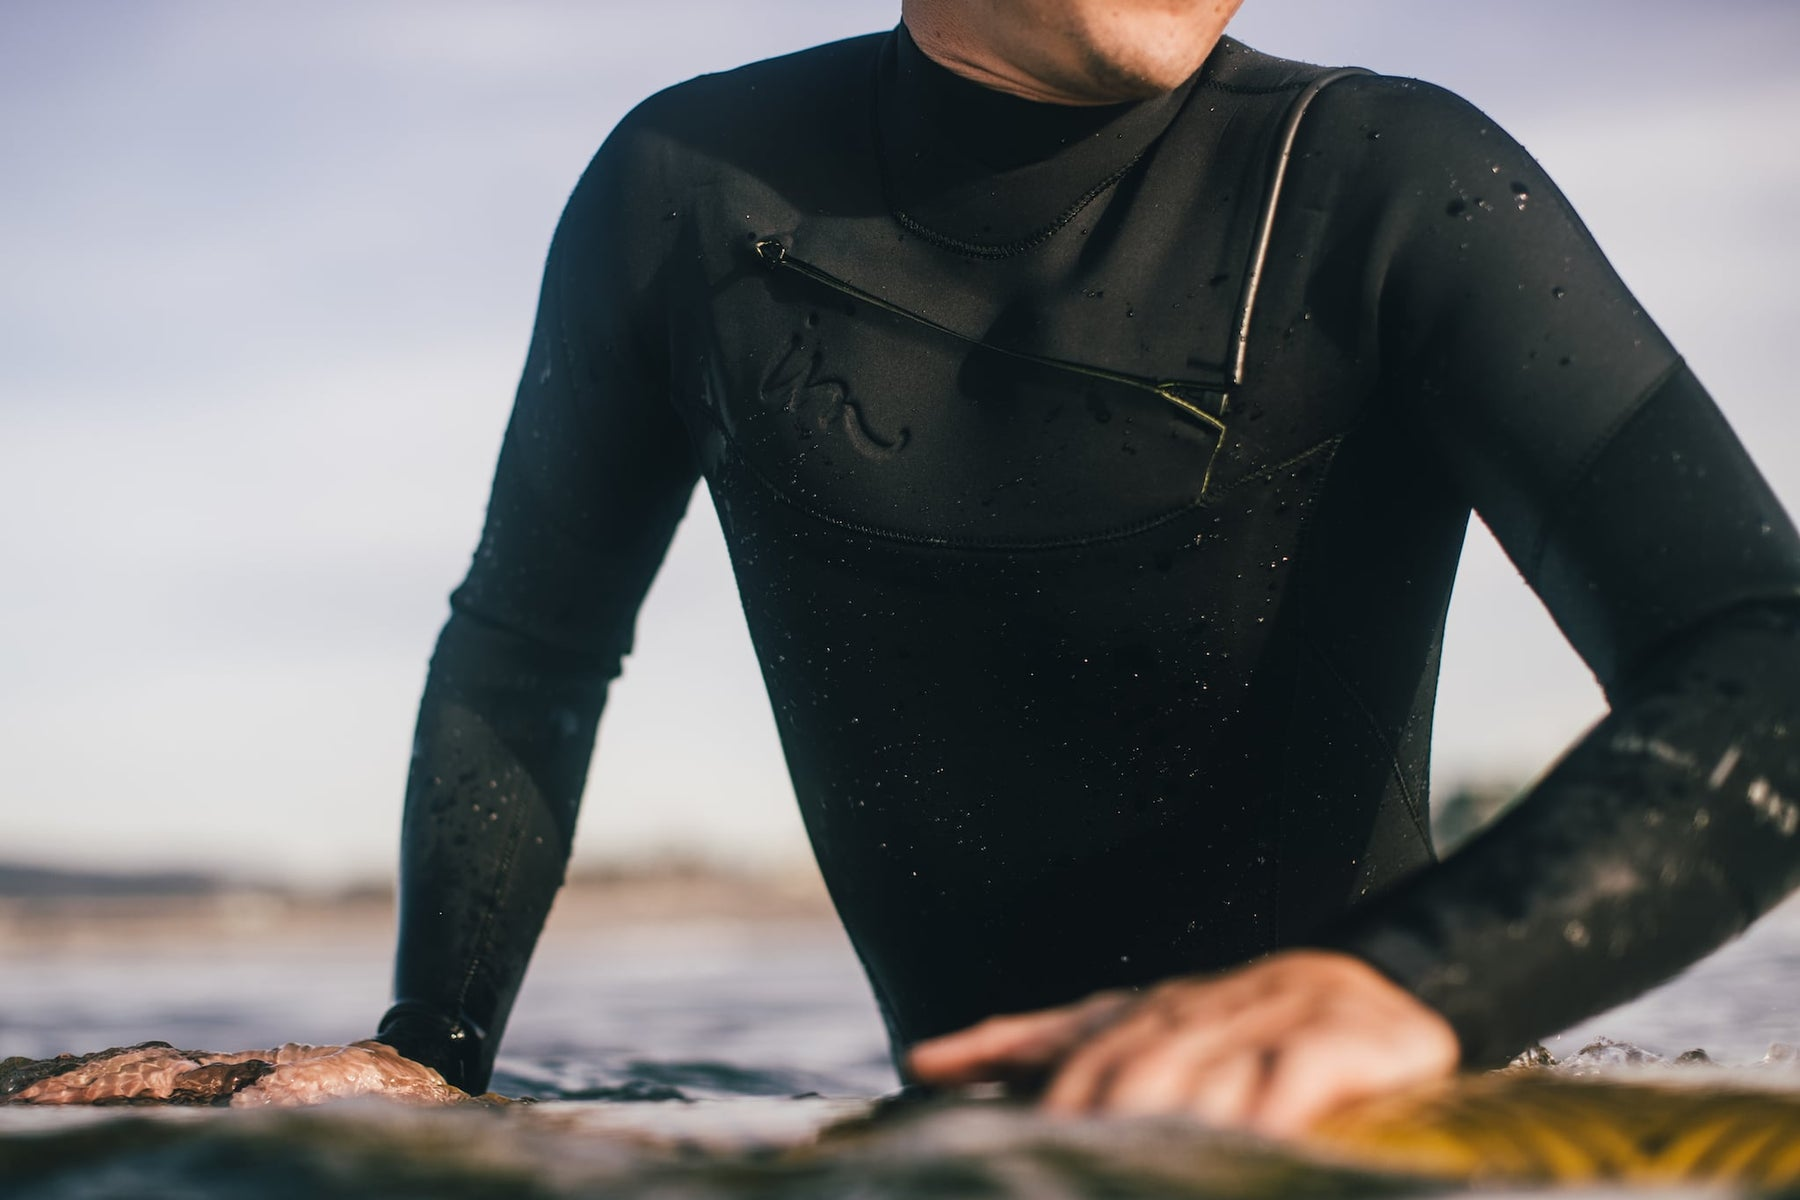 8 Wetsuit Care Tips to Keep Your Wetsuit Looking New